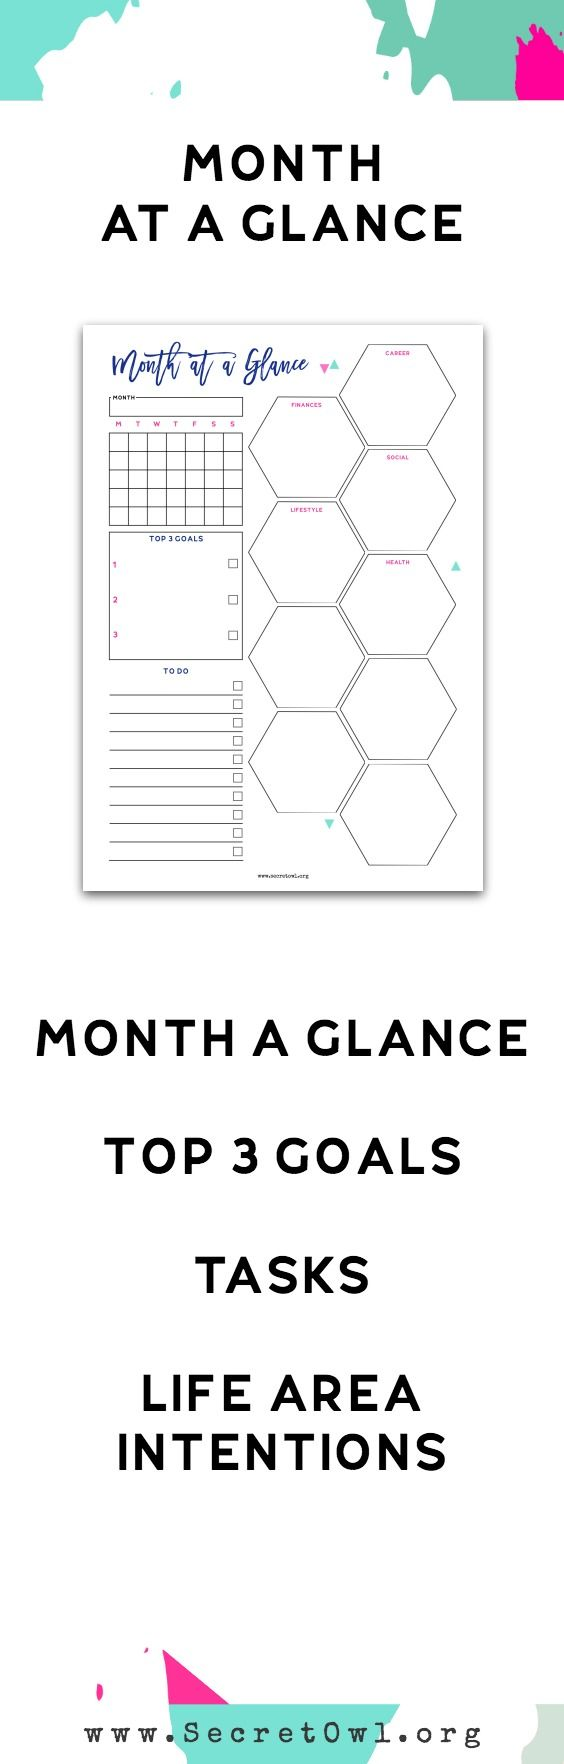 Excellent 1.5 Binder Spine Template Small 10 Label Template Square 10 Tips For A Great Resume 2 Page Brochure Template Old 2014 Blank Calendar Template Black2014 Calendar Excel Template 25  Best Ideas About Monthly Planner Template On Pinterest ..